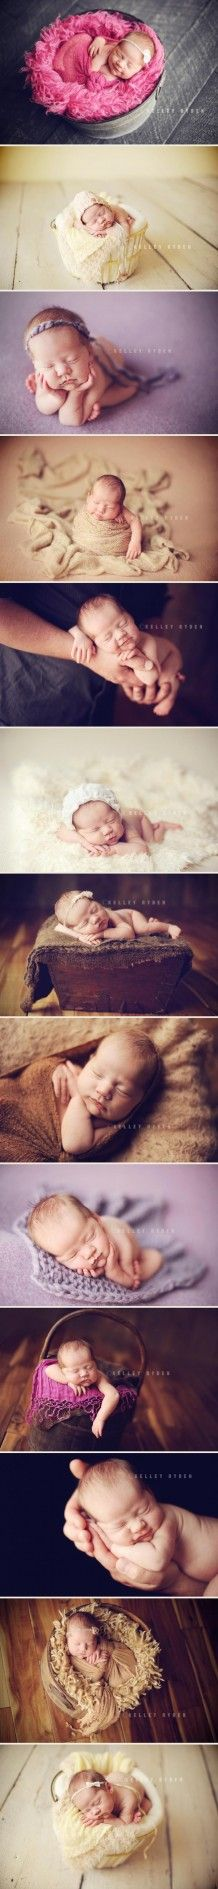 photography / newborn girl styling and posing